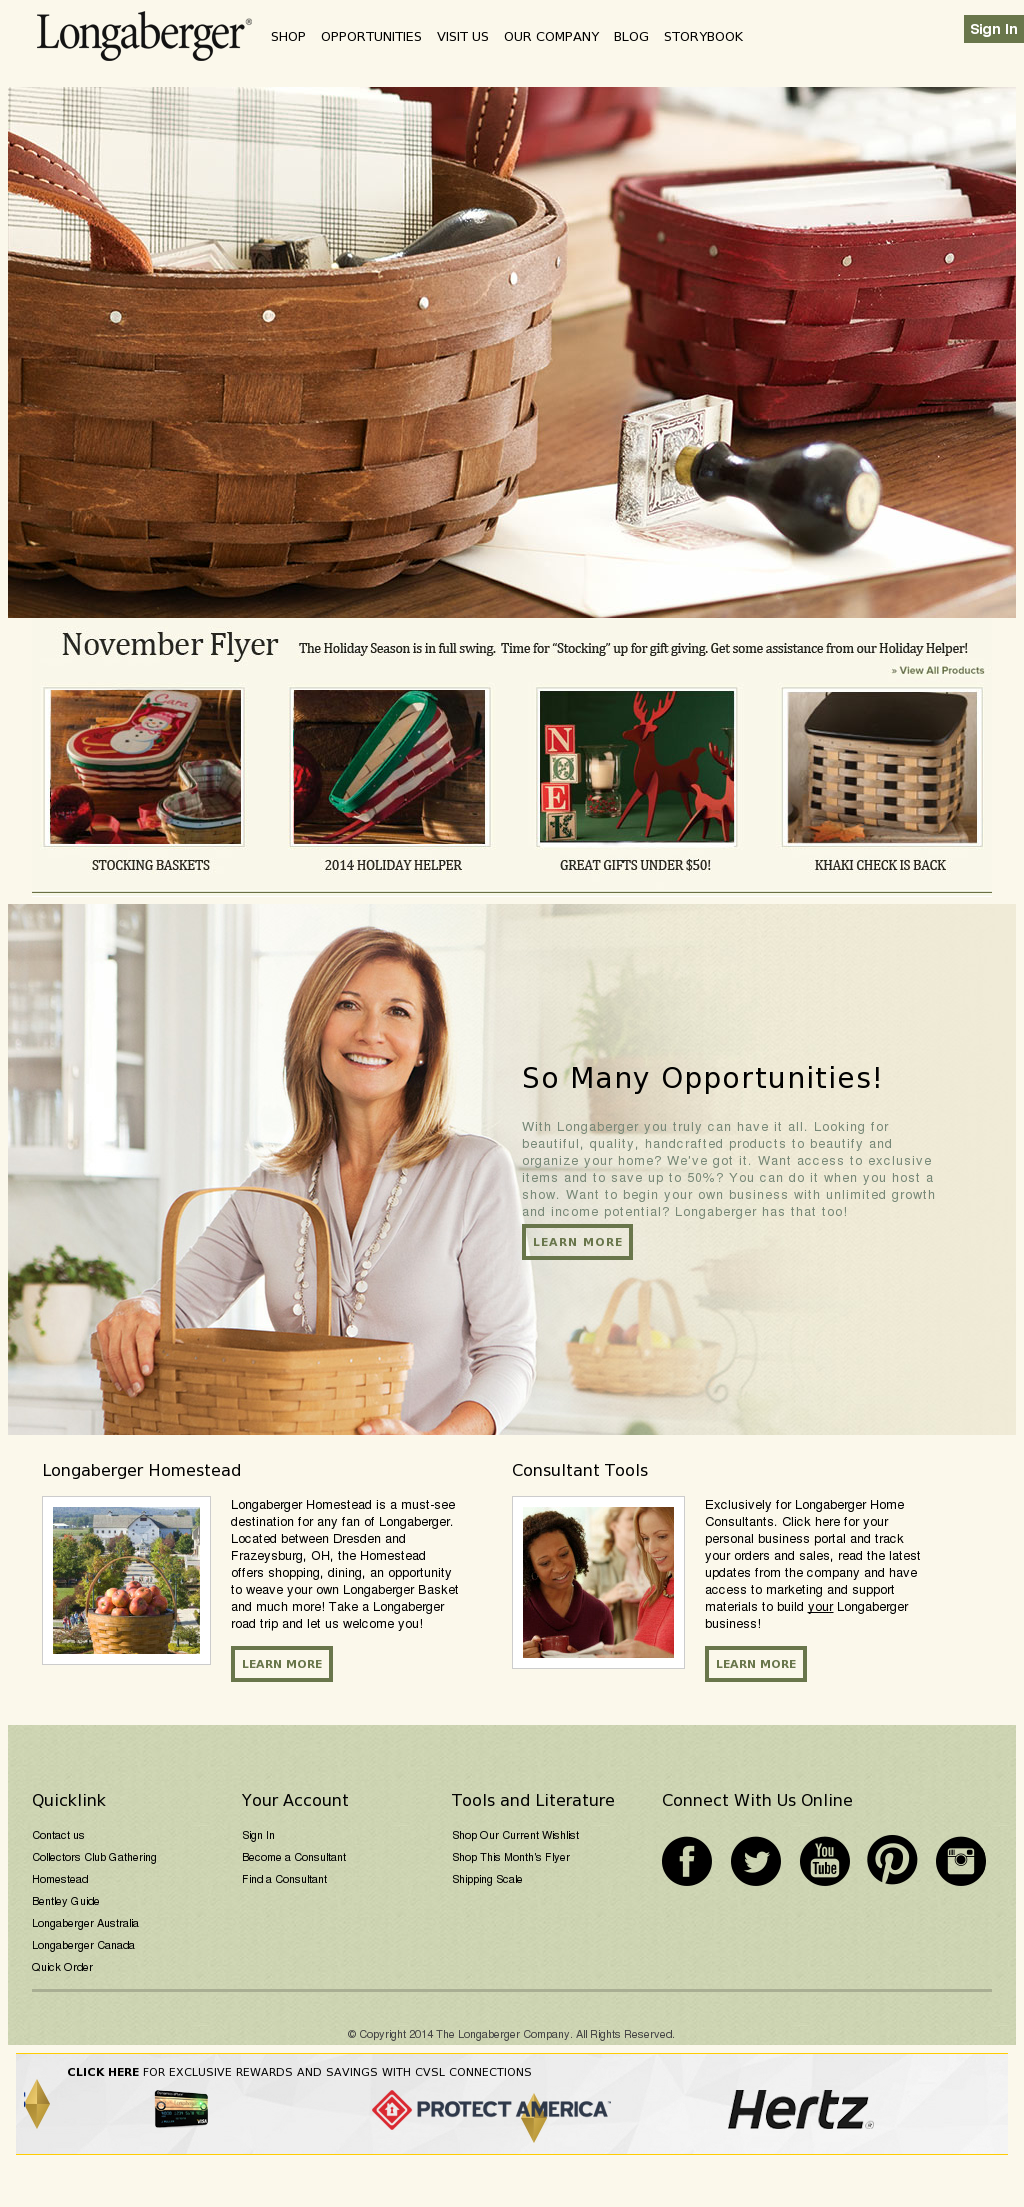 Longaberger Competitors, Revenue and Employees - Owler Company Profile